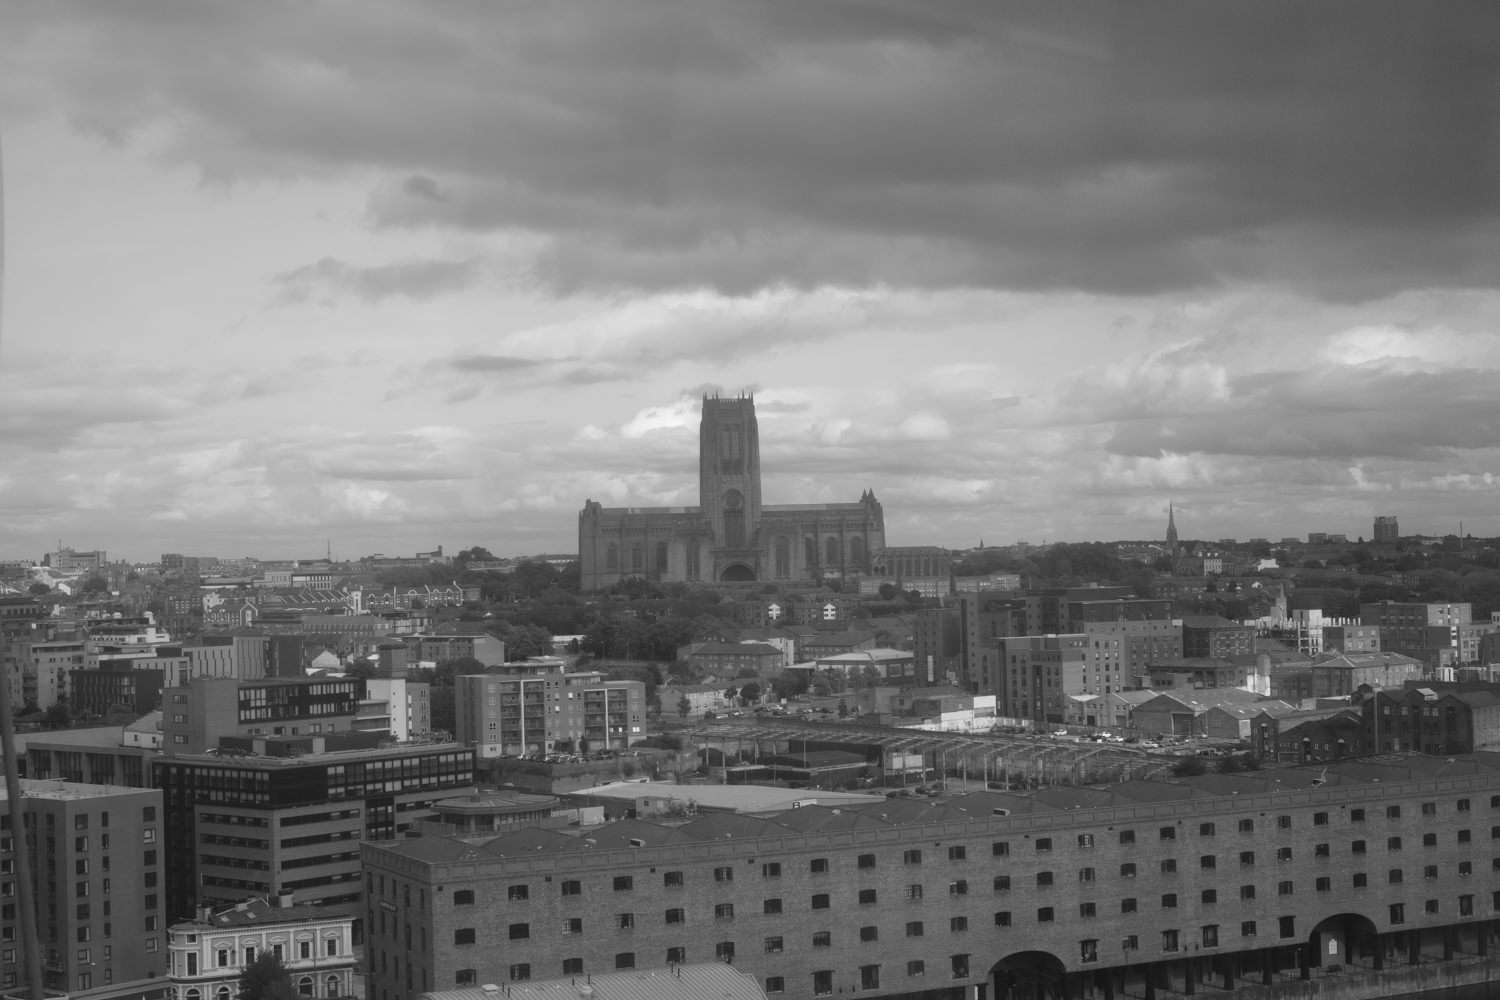 Looking towards the cathedral, which rises majestically above all the other buildings in the area.